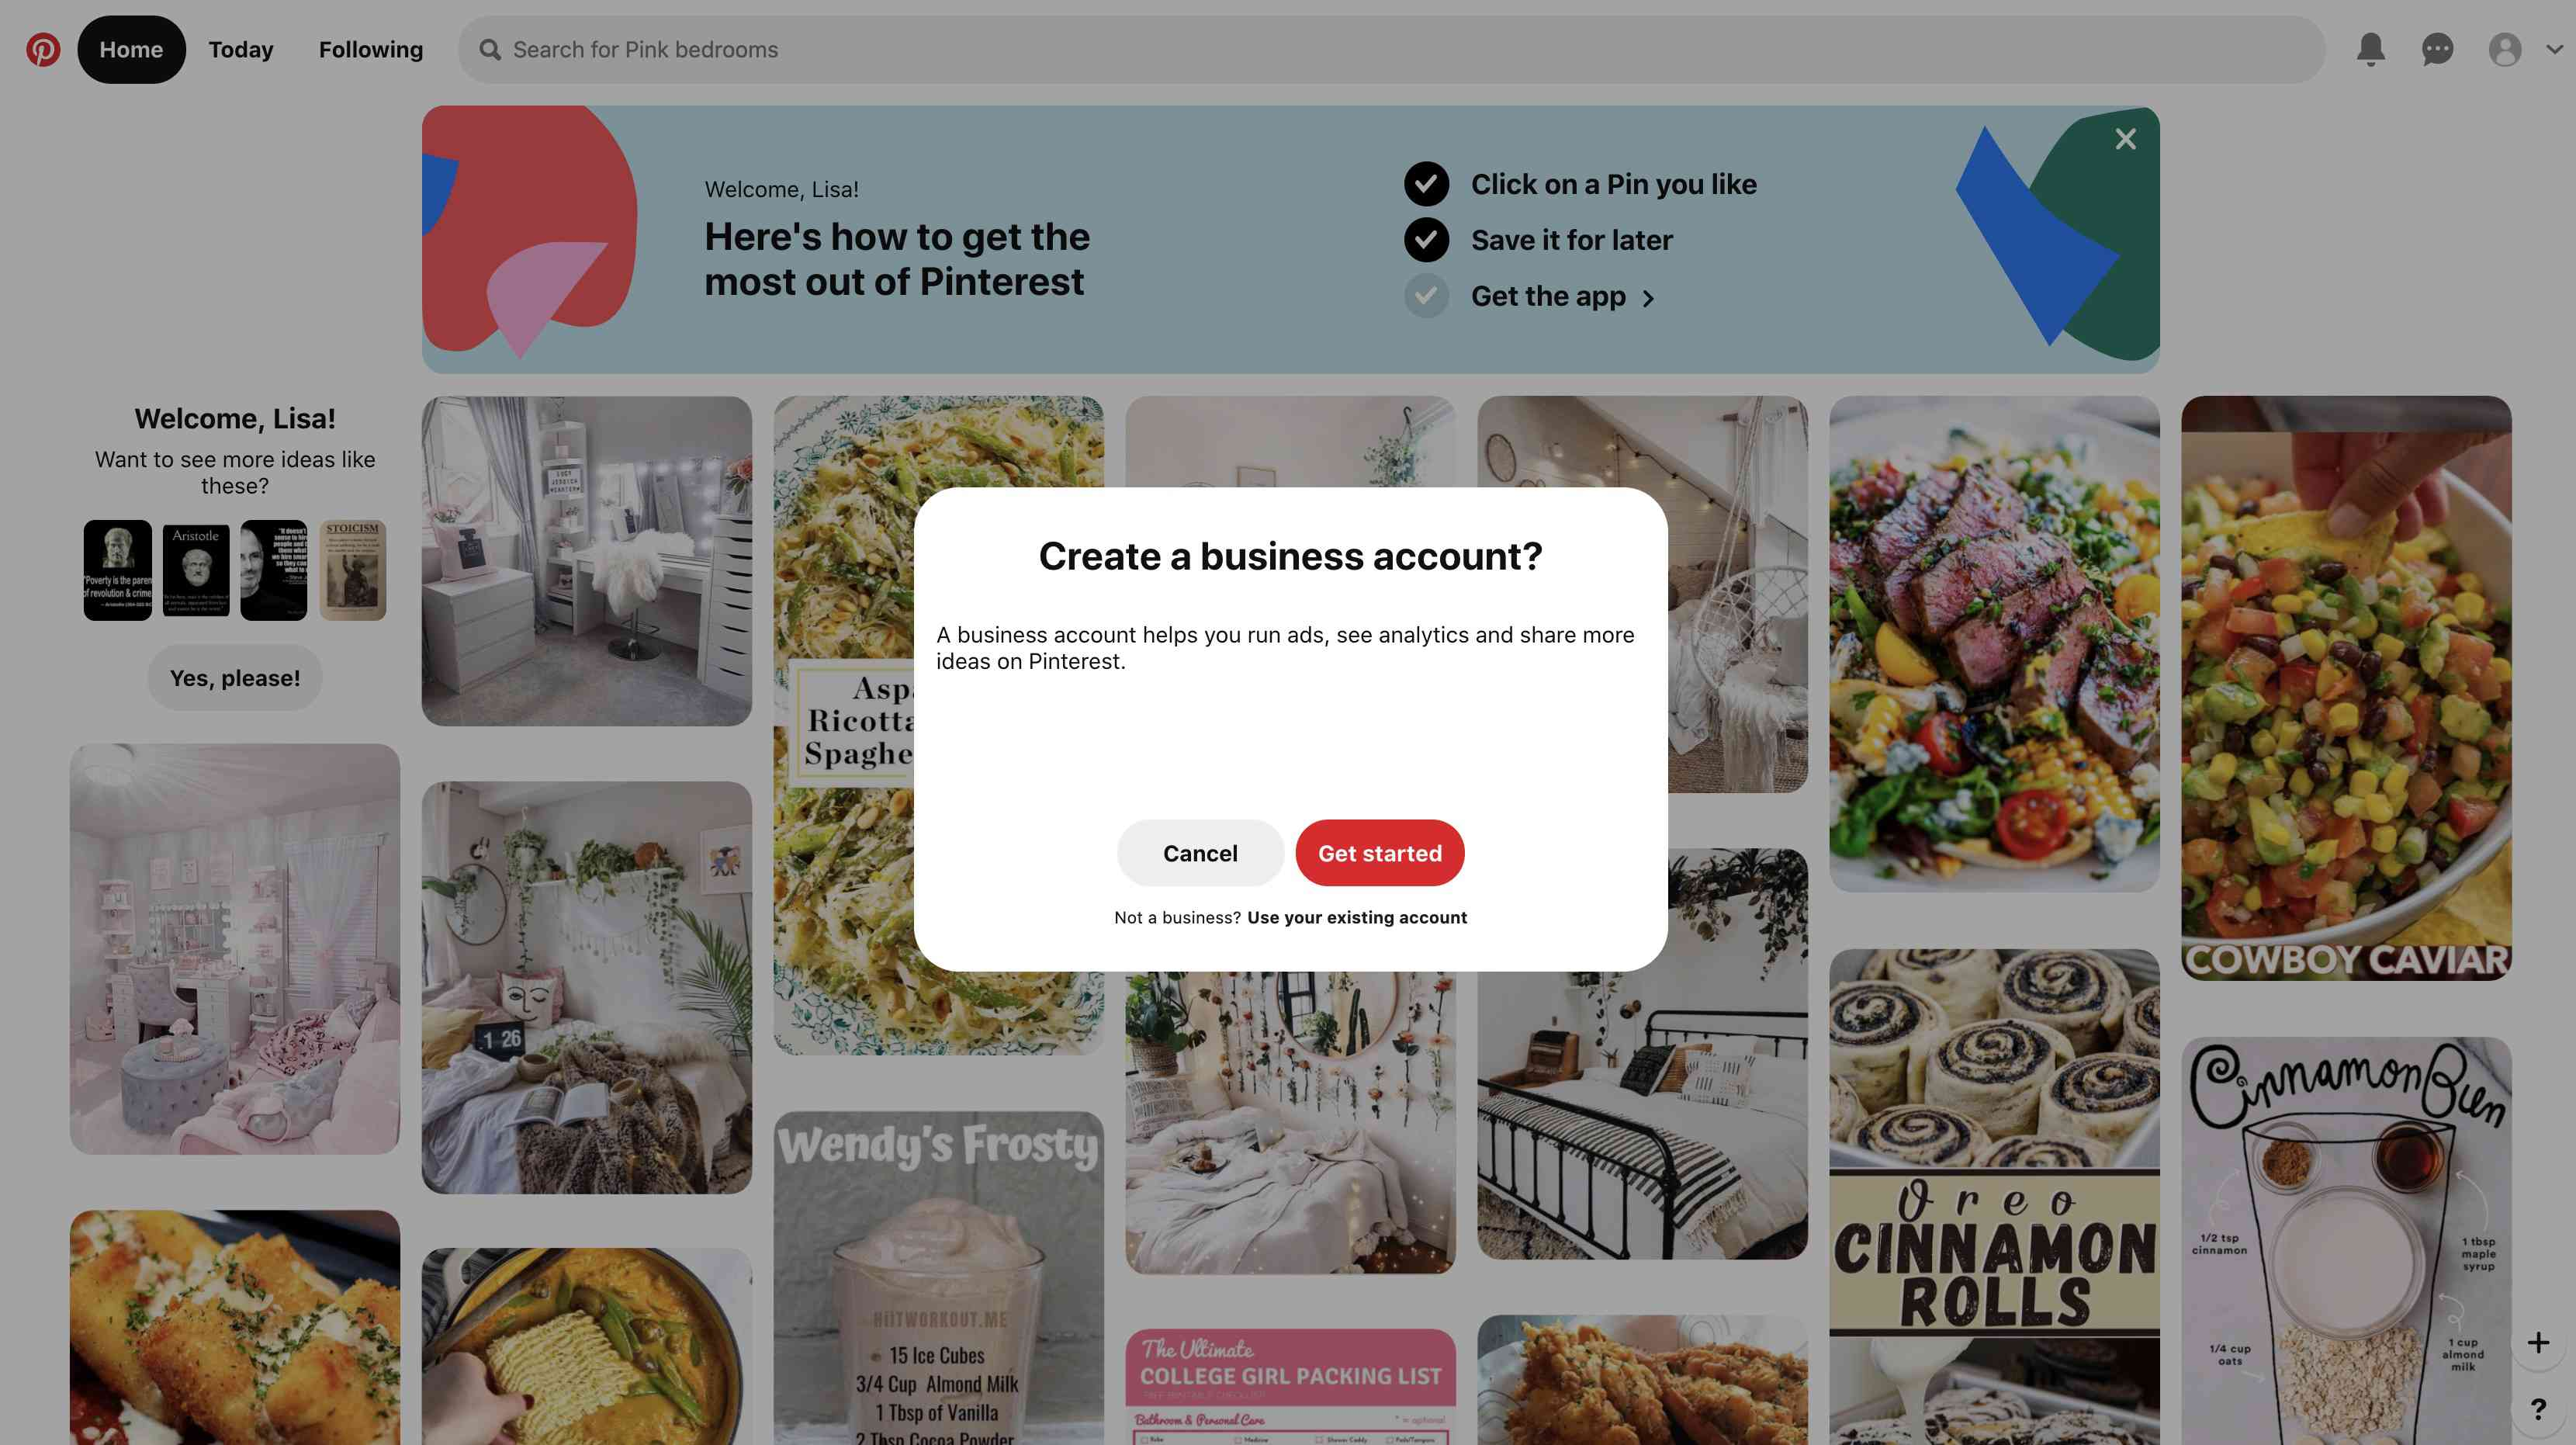 Select Add a free business account